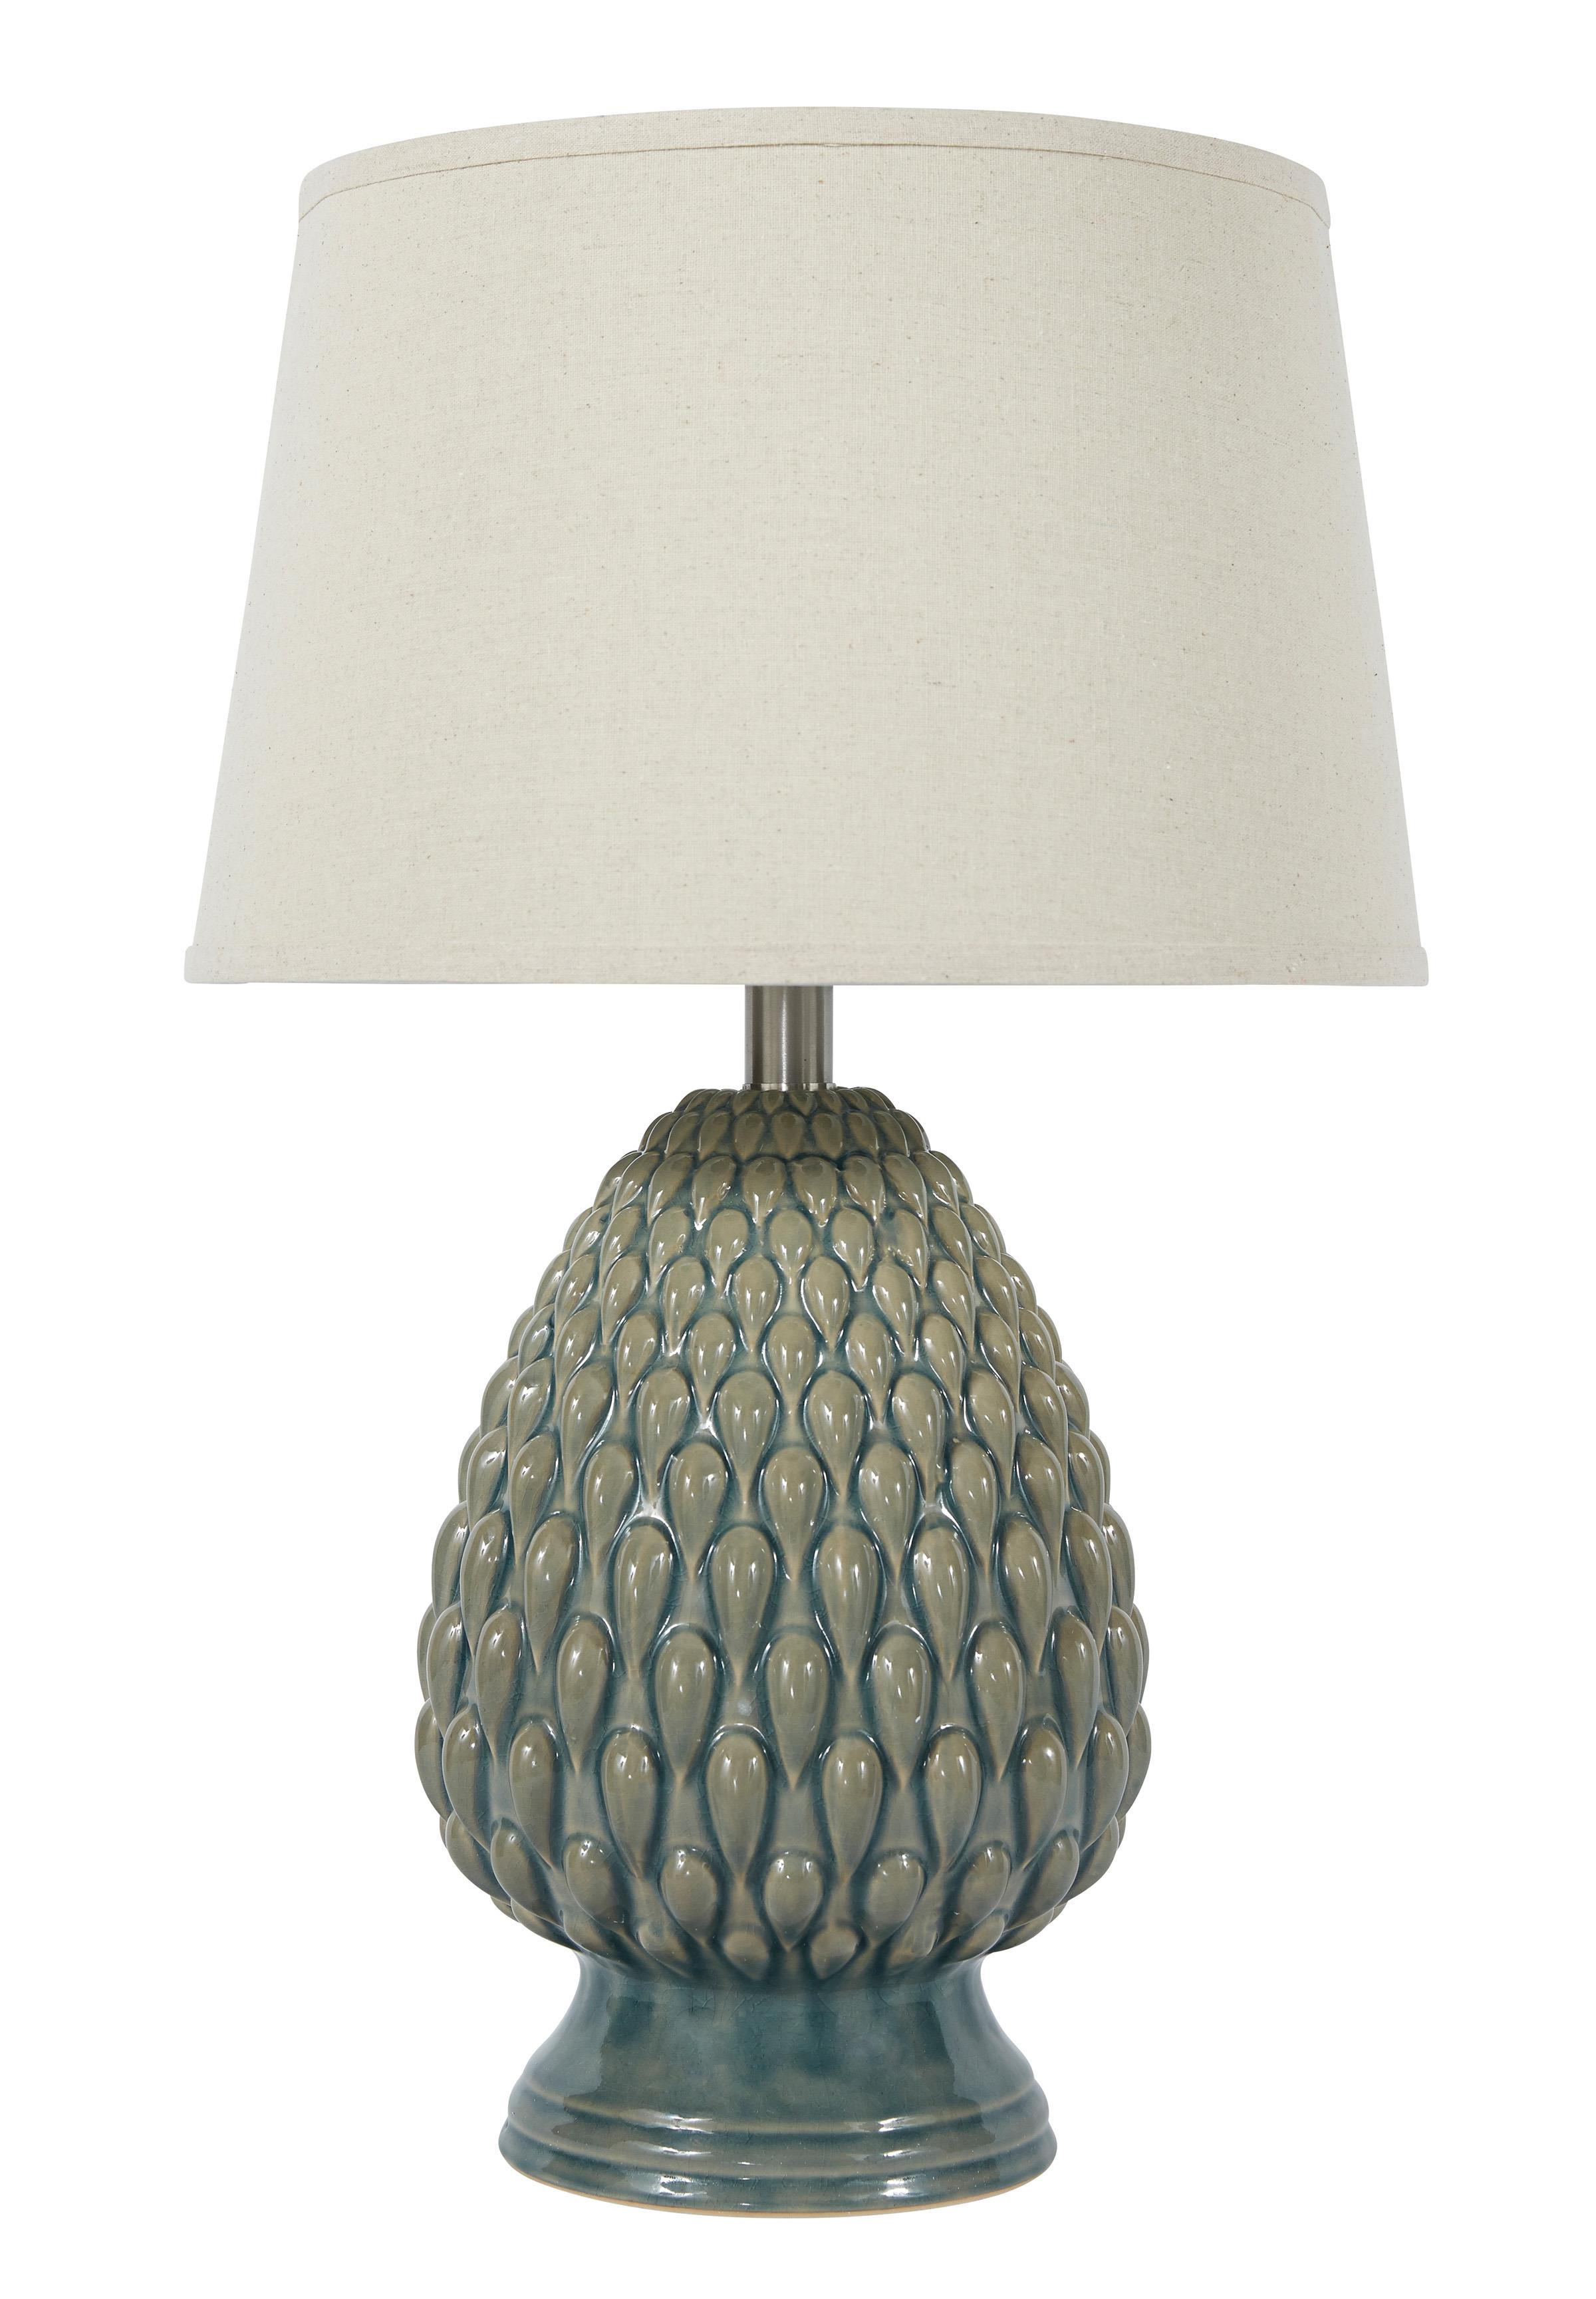 signature design by ashley lamps vintage style saidee On teal colored lamps